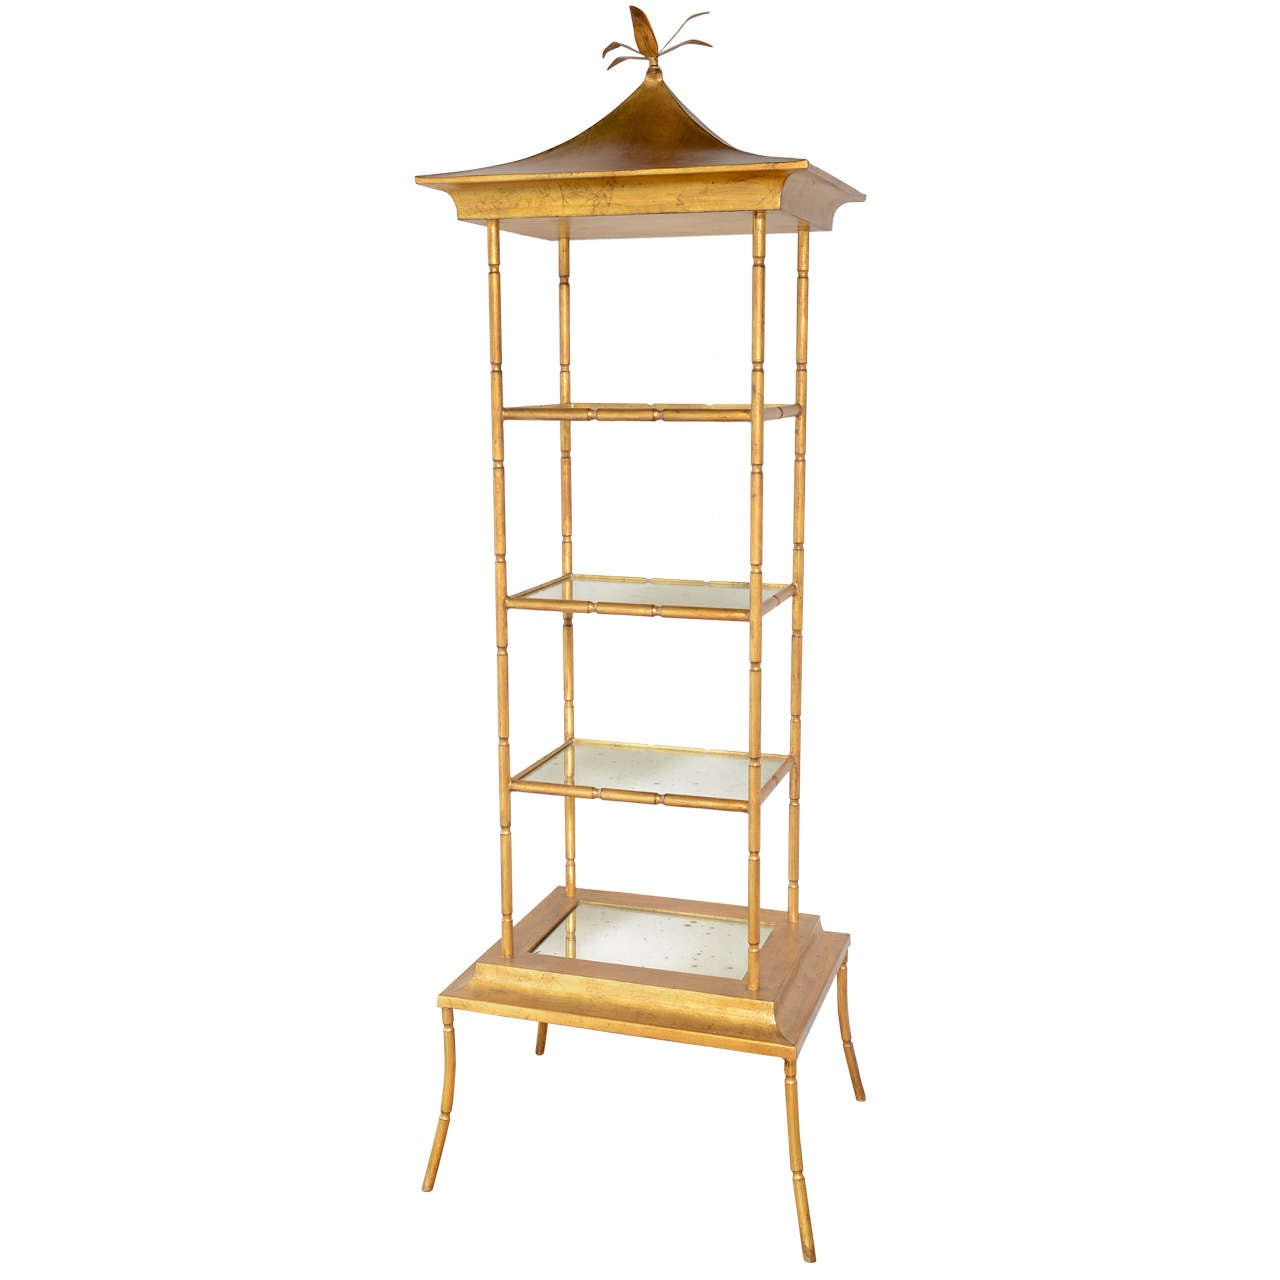 gilded metal pagoda style etagere at 1stdibs. Black Bedroom Furniture Sets. Home Design Ideas